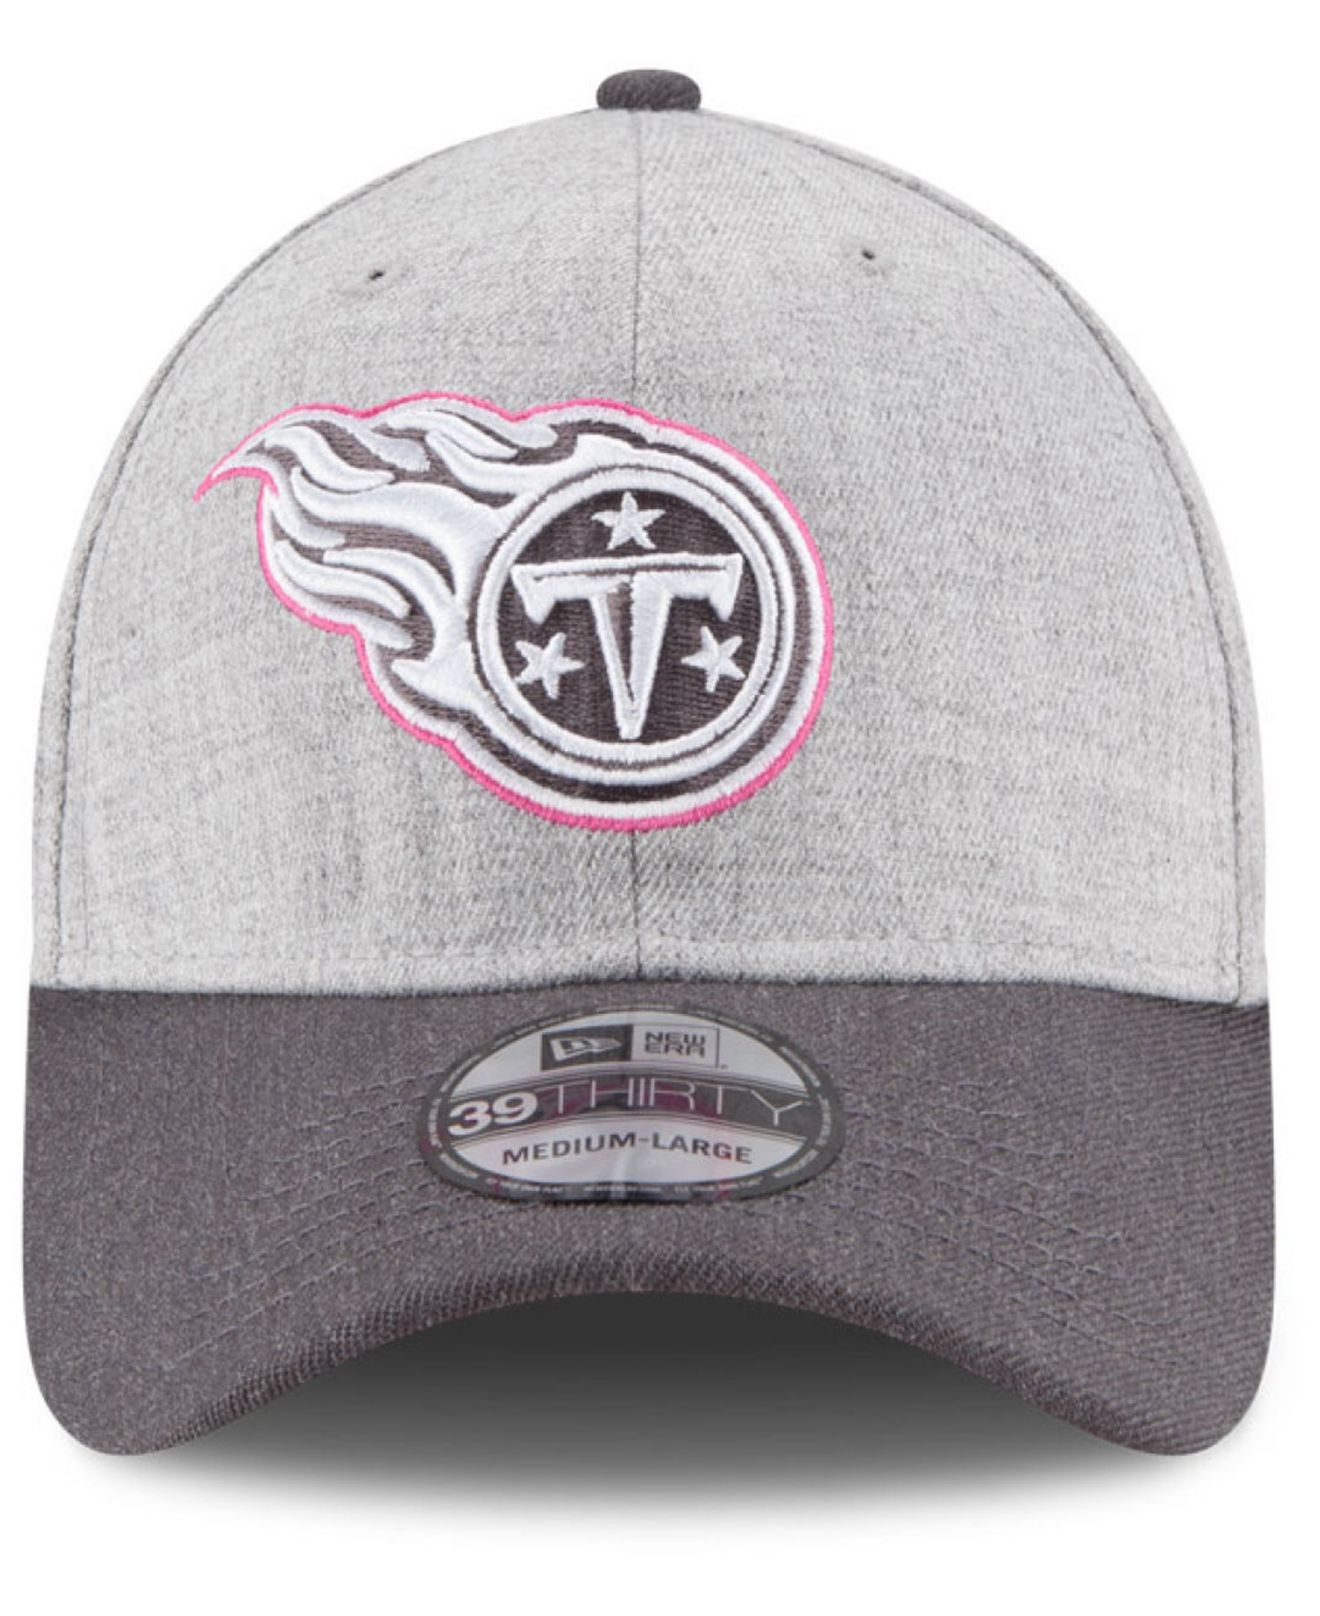 5483d100b1b ... wholesale lyst ktz tennessee titans breast cancer awareness 39thirty  cap in gray 79aca 19a2d